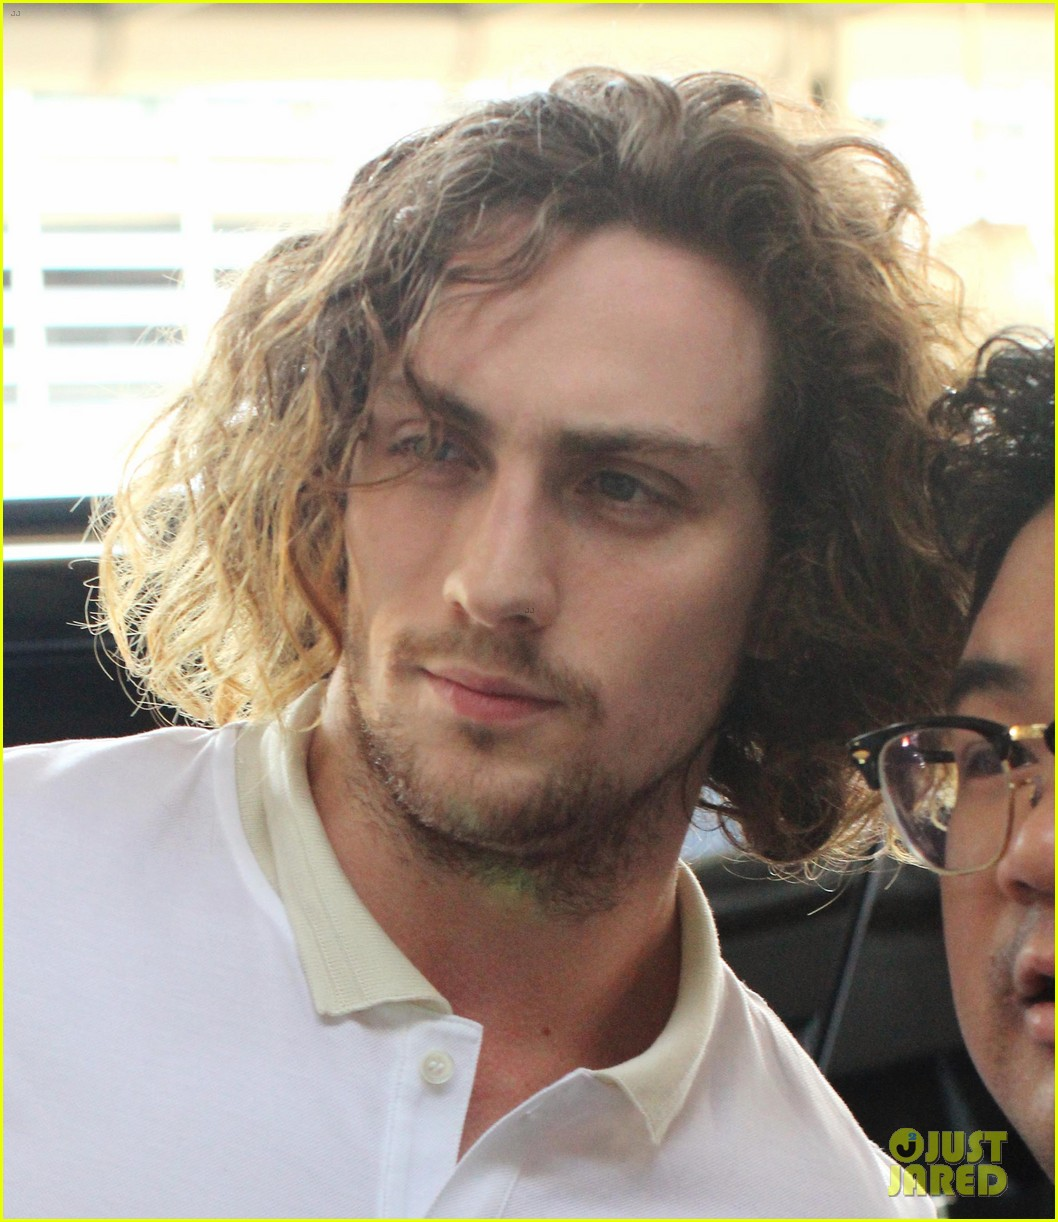 Aaron Taylor-Johnson #2